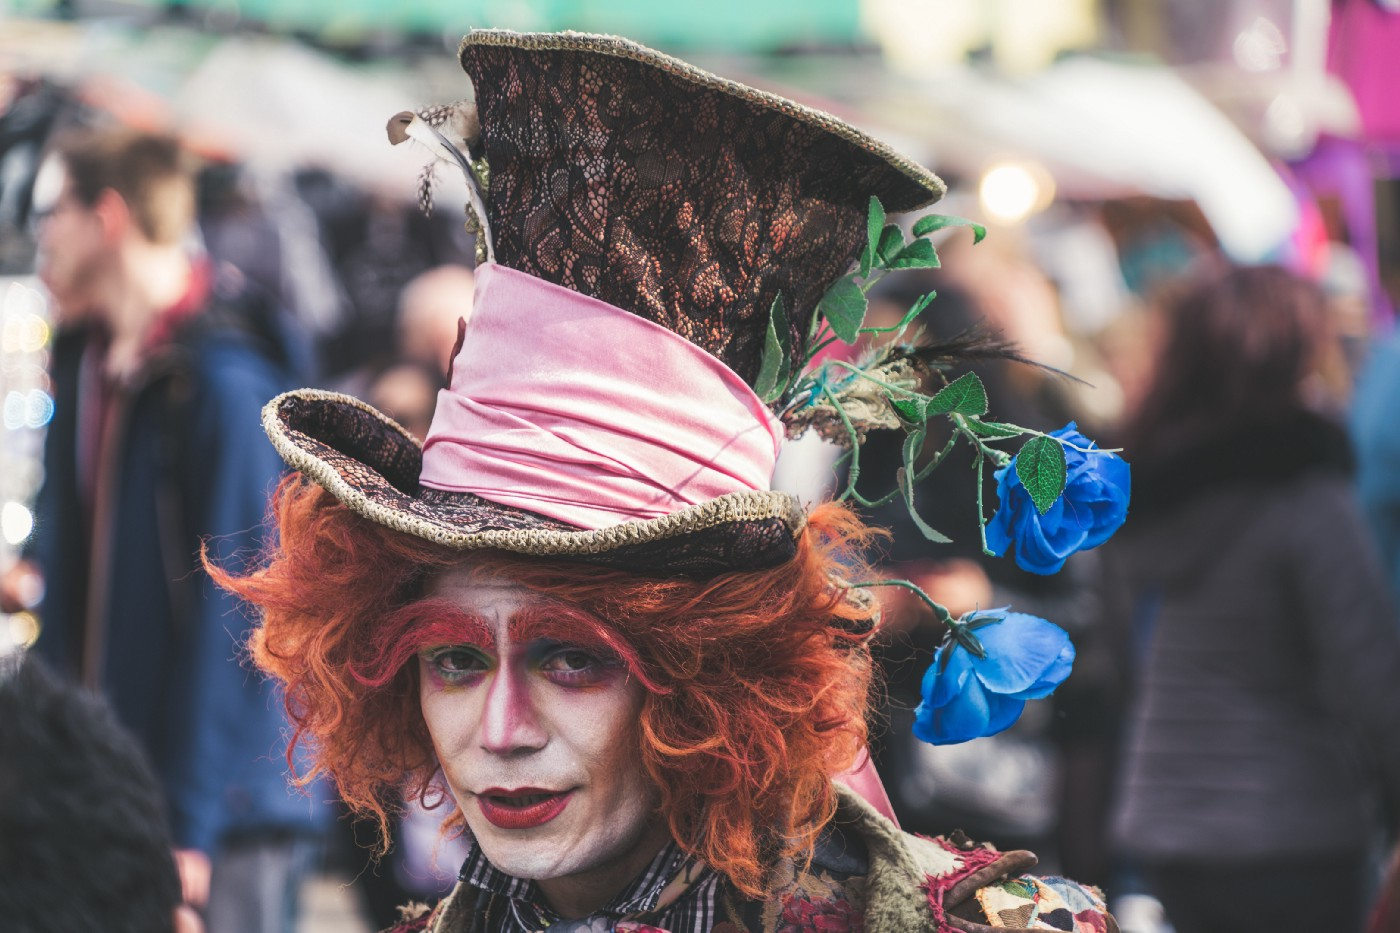 The Mad Hatter in a street parade